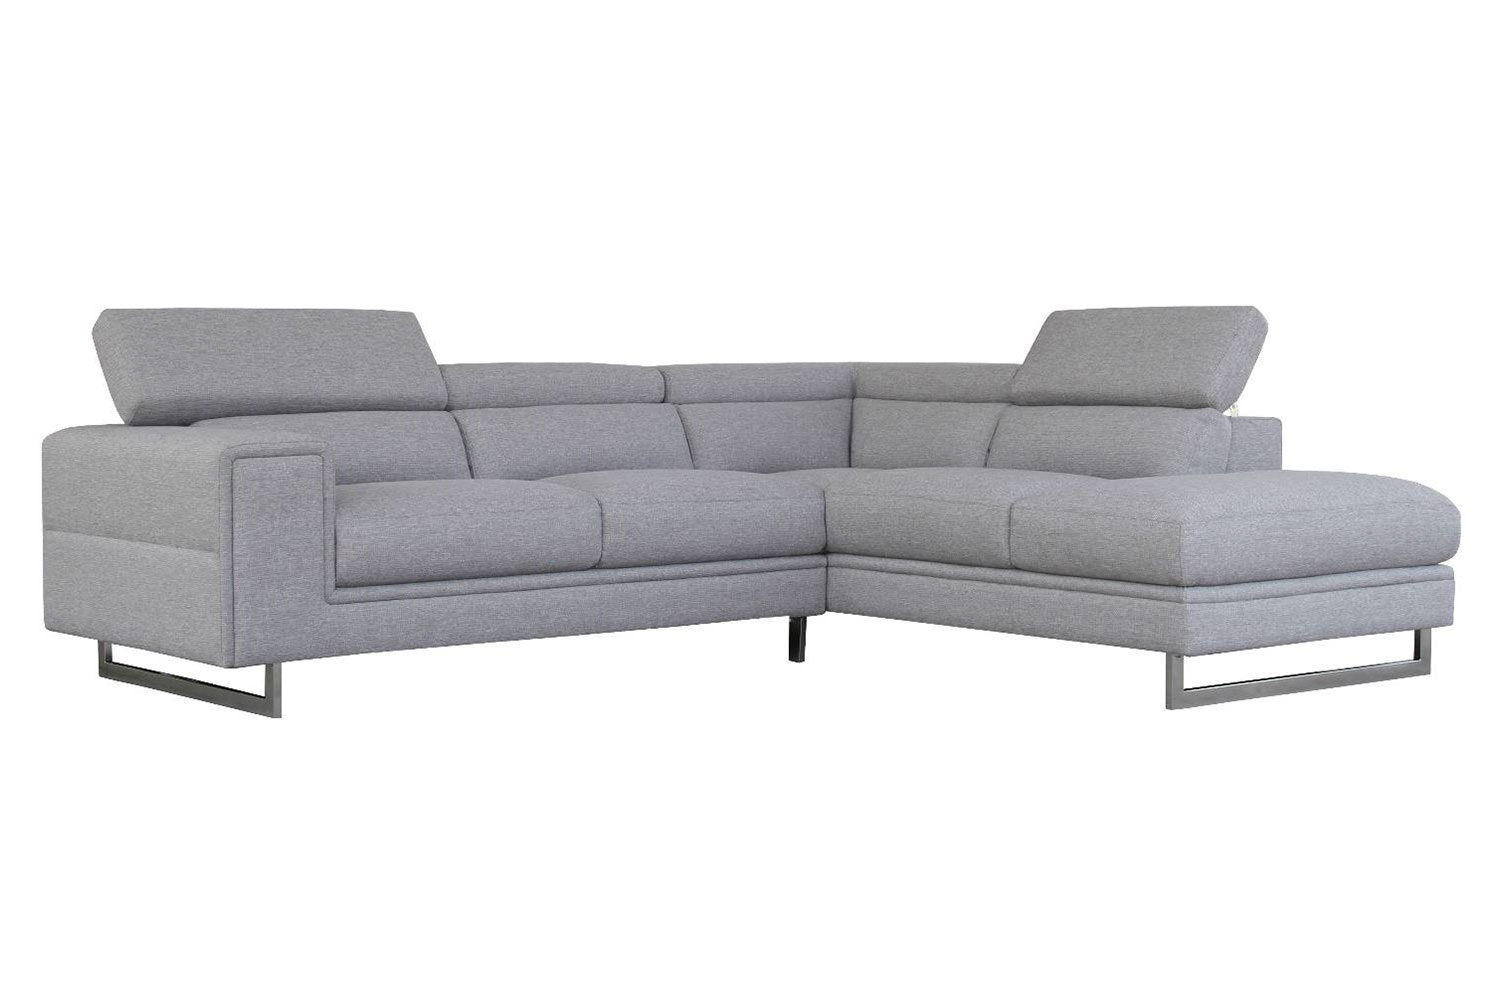 Laguna 2 Seater Fabric Sofa with Chaise